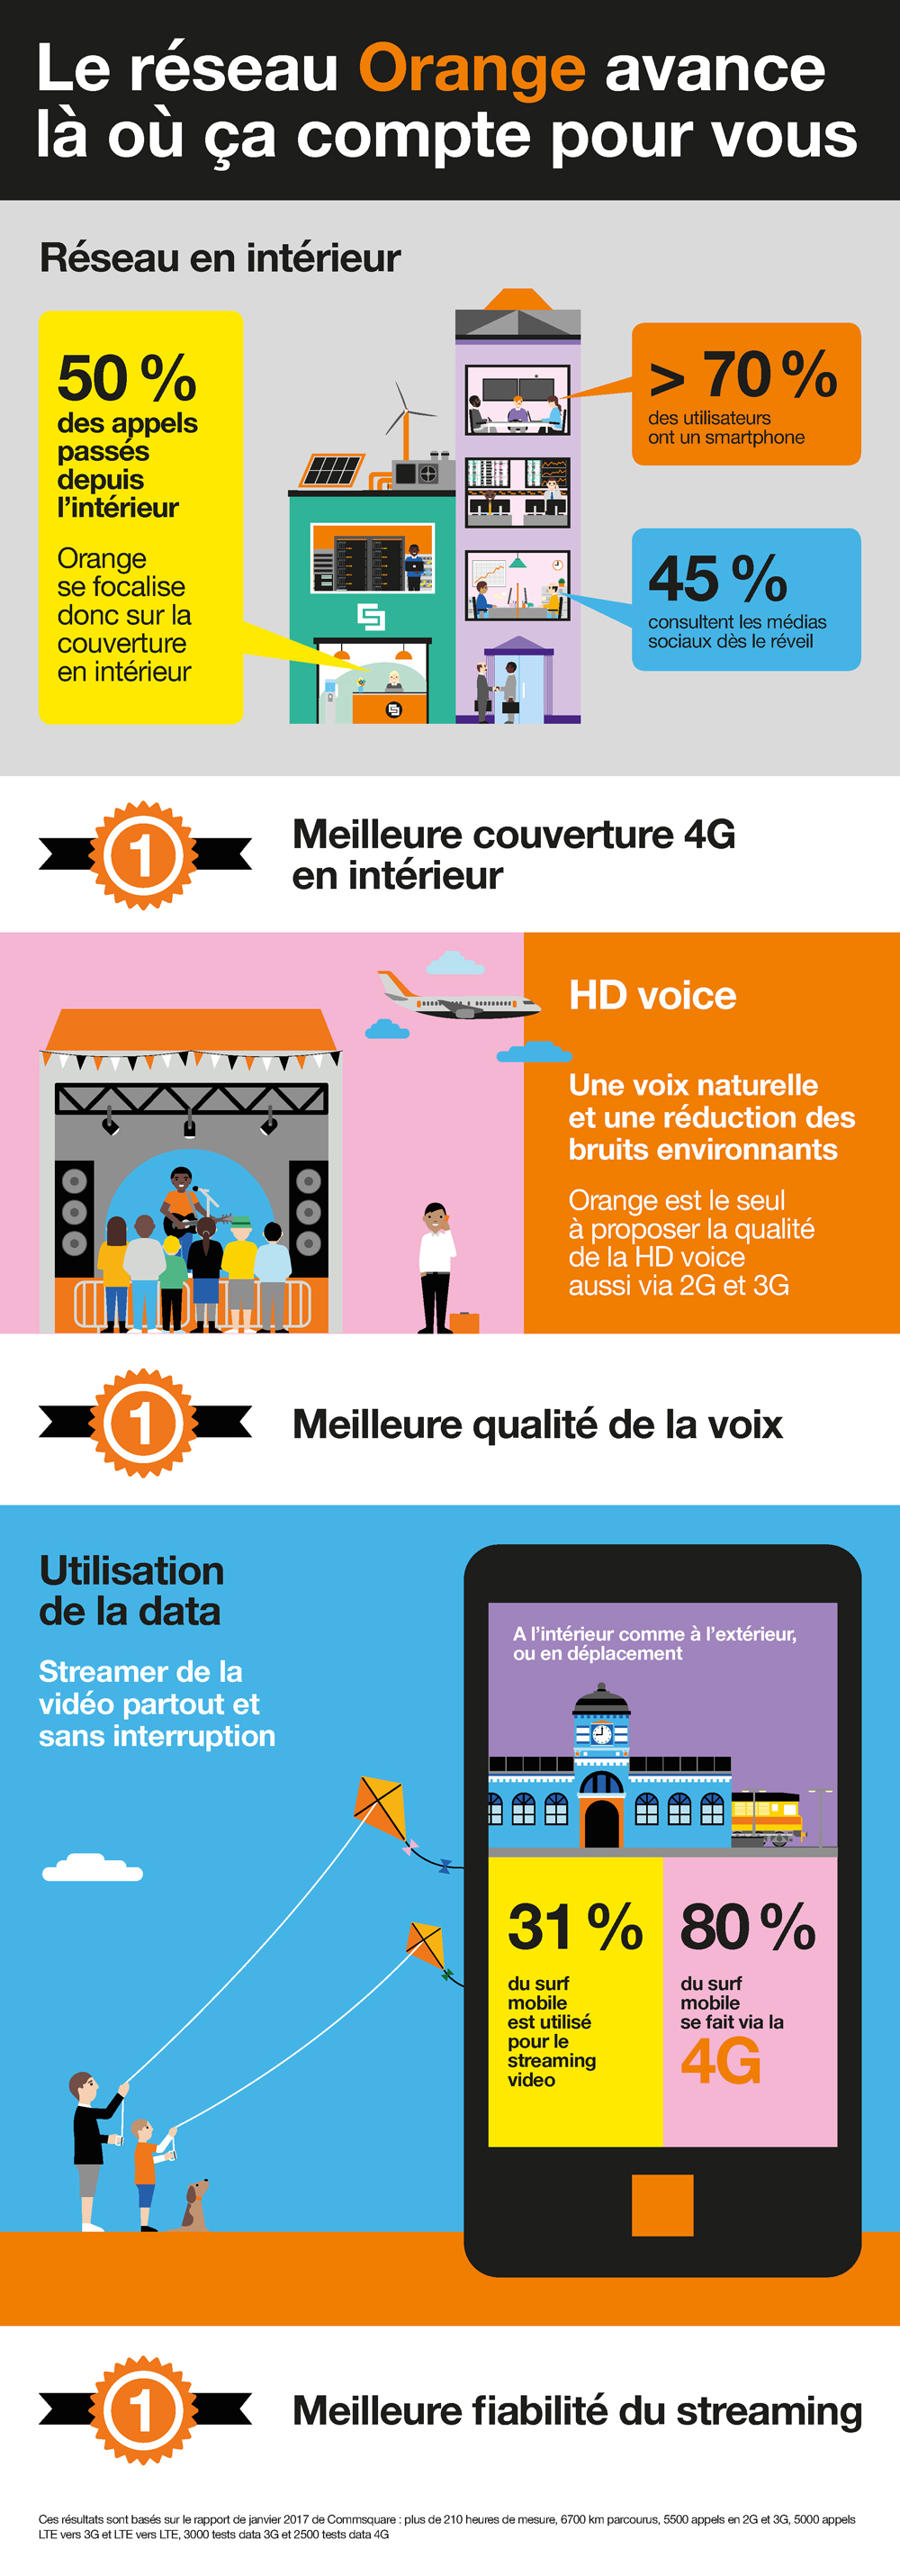 Excellence du réseau Orange via Commsquare 2017